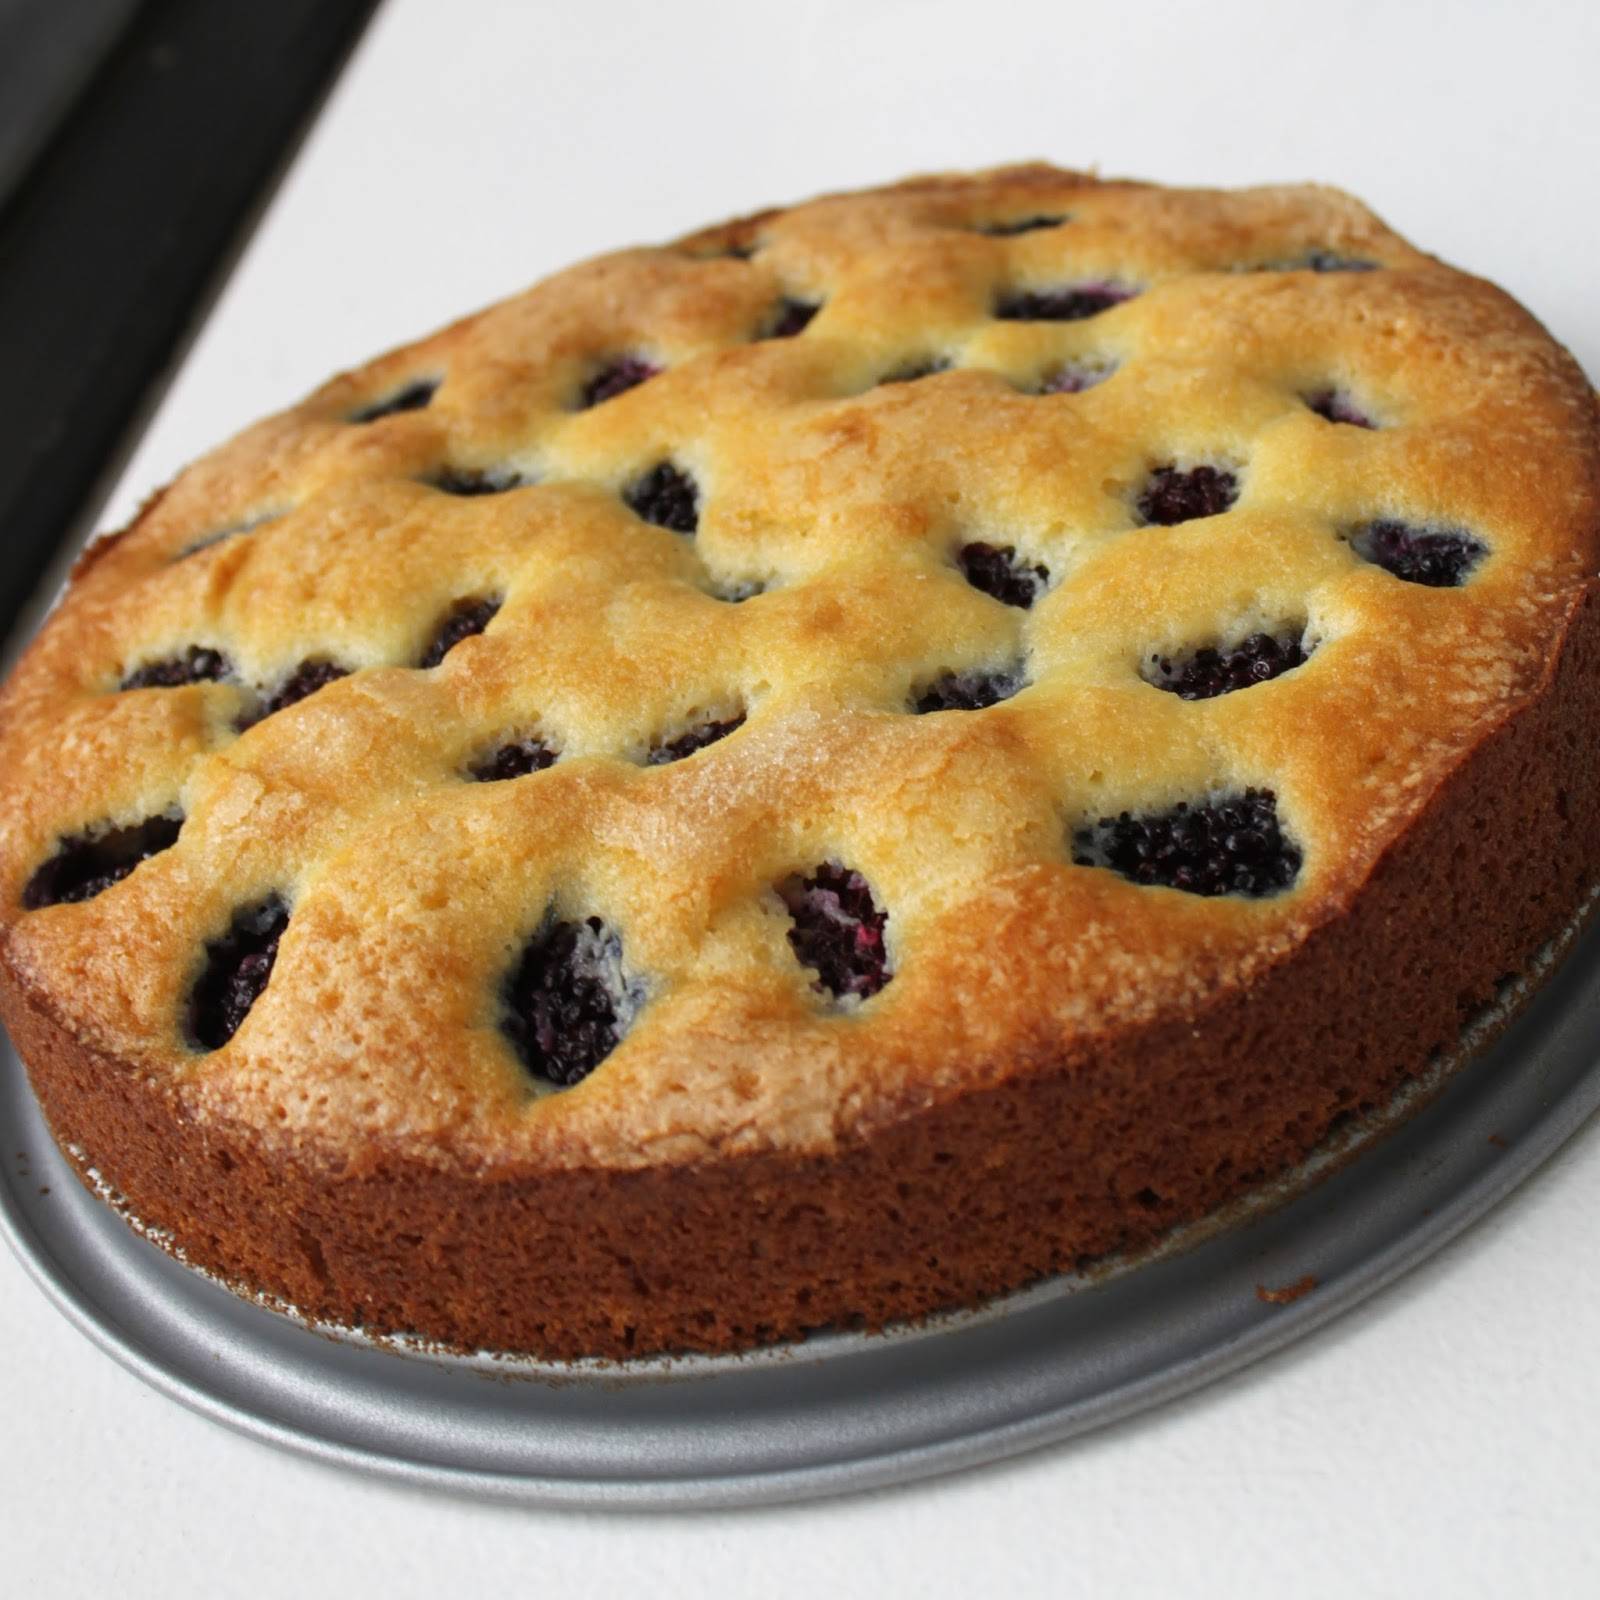 Life's Too Short to Skip Dessert: Blackberry Buttermilk Cake